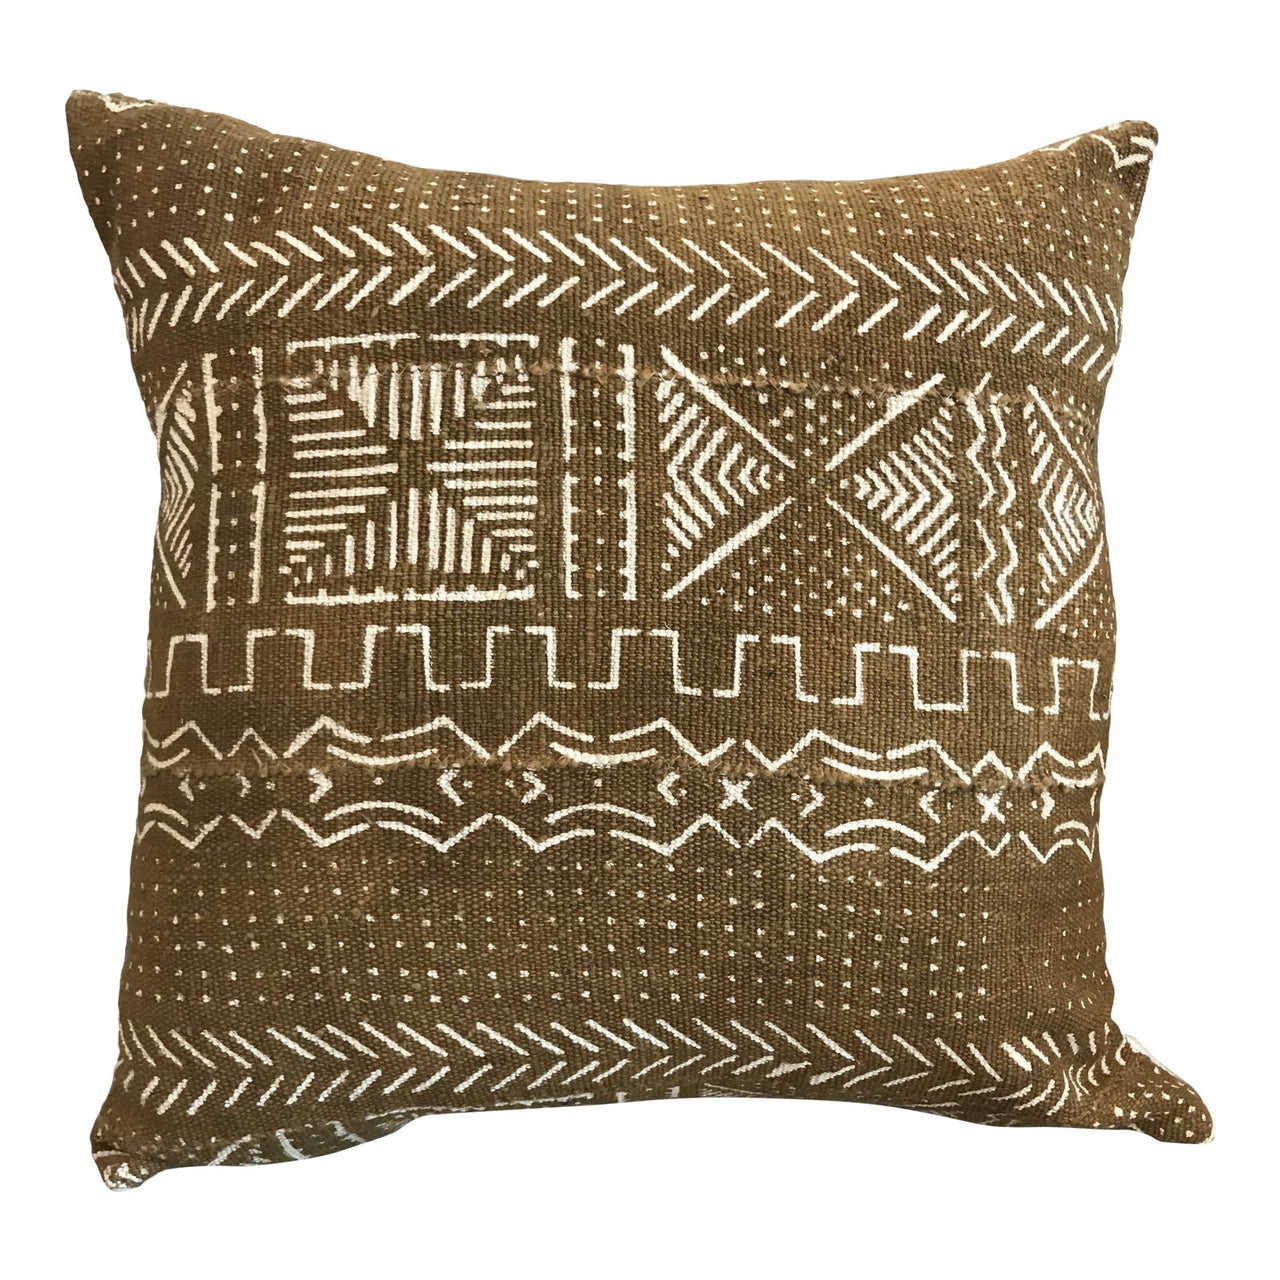 African Mudcloth Throw Pillow in Mustard | touchGOODS